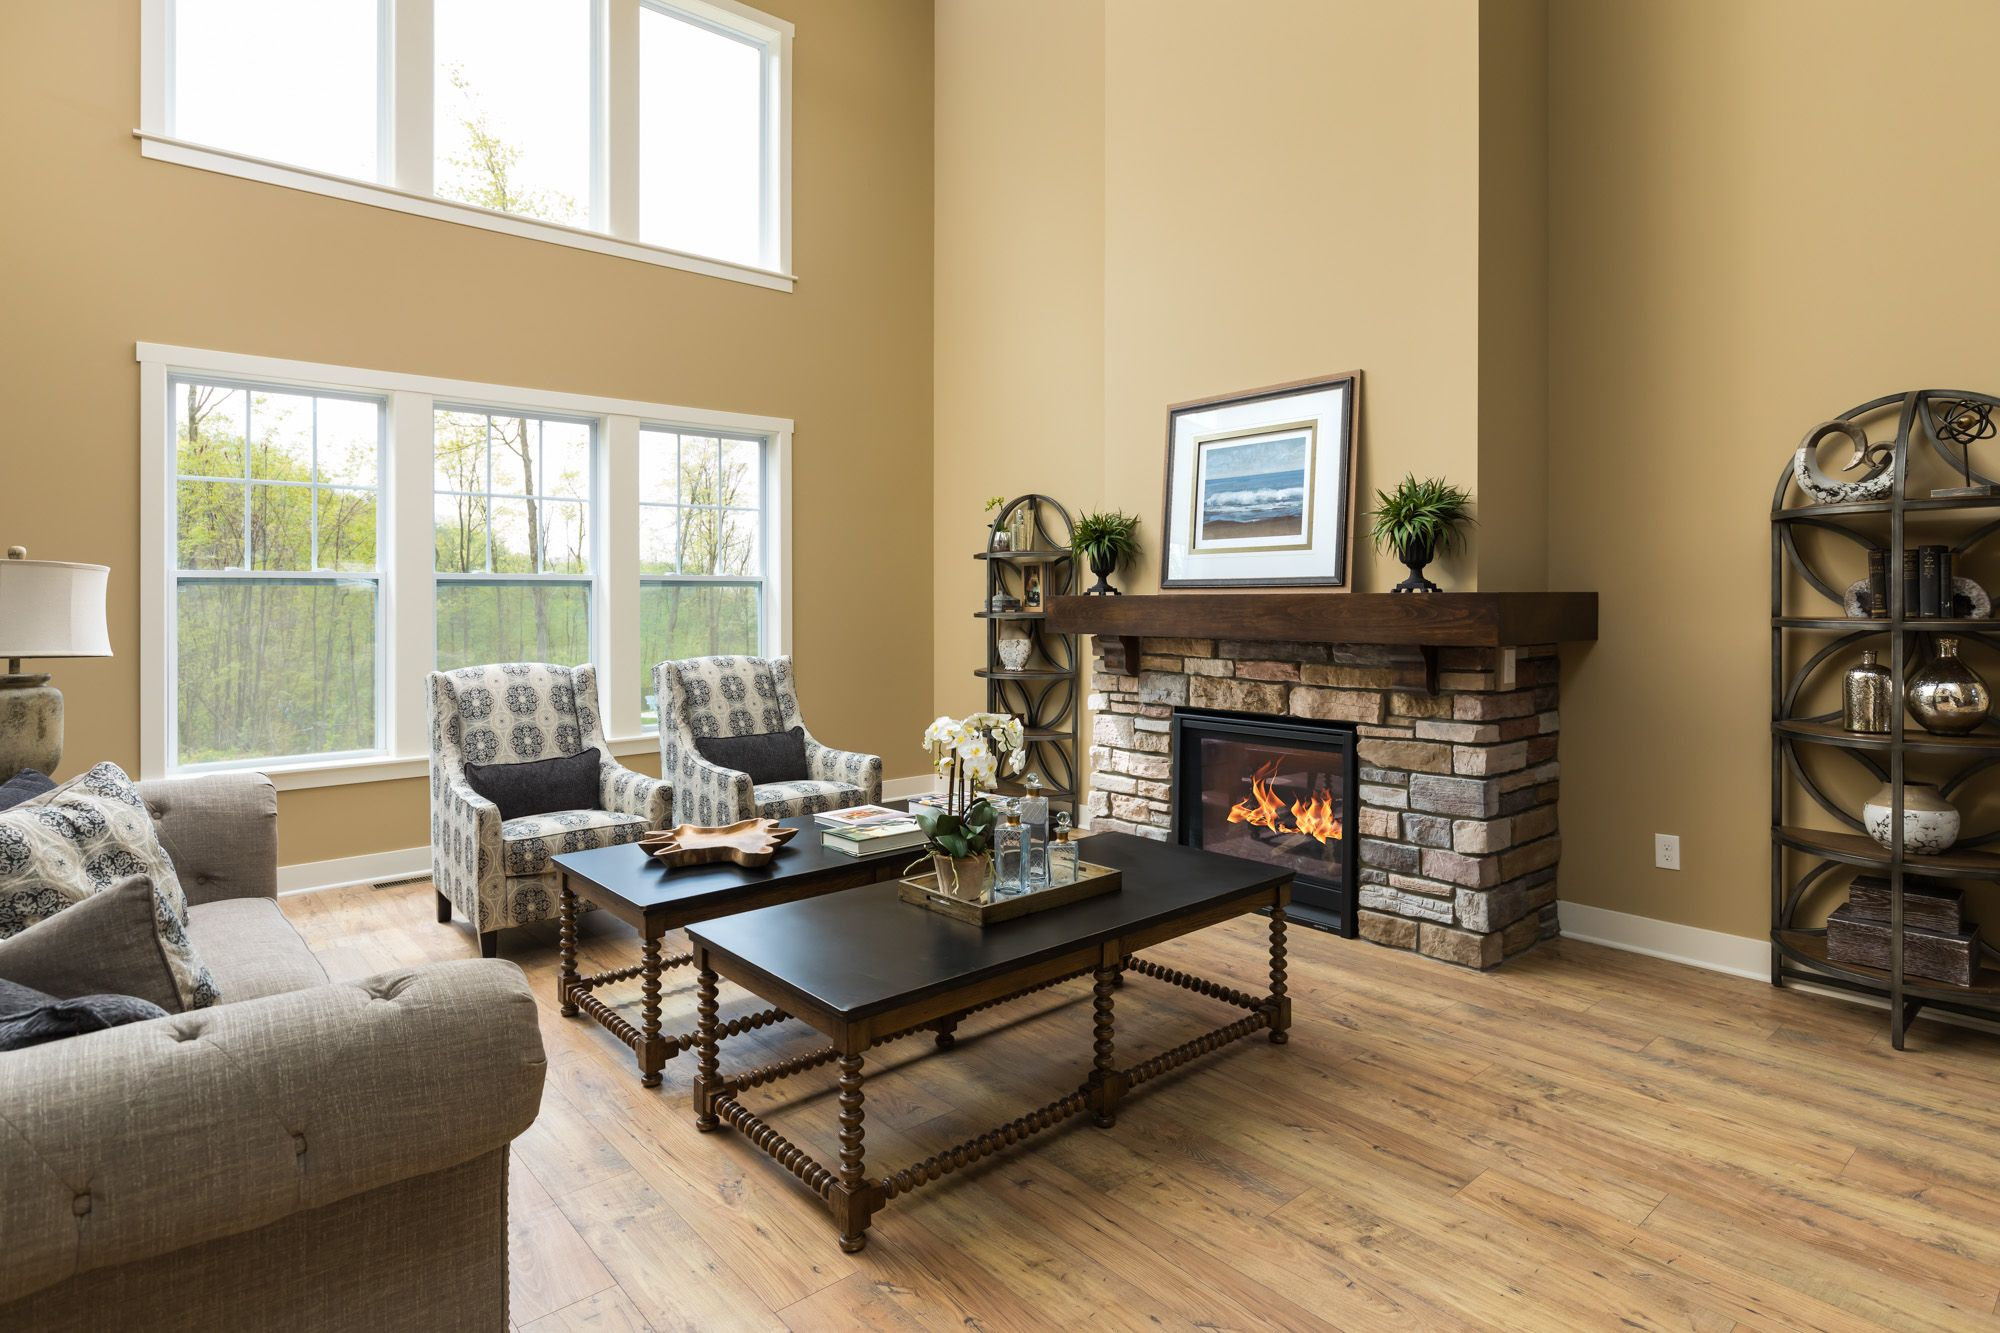 Living Area featured in the Traditions 2900 V8.2b By Allen Edwin Homes in Ann Arbor, MI